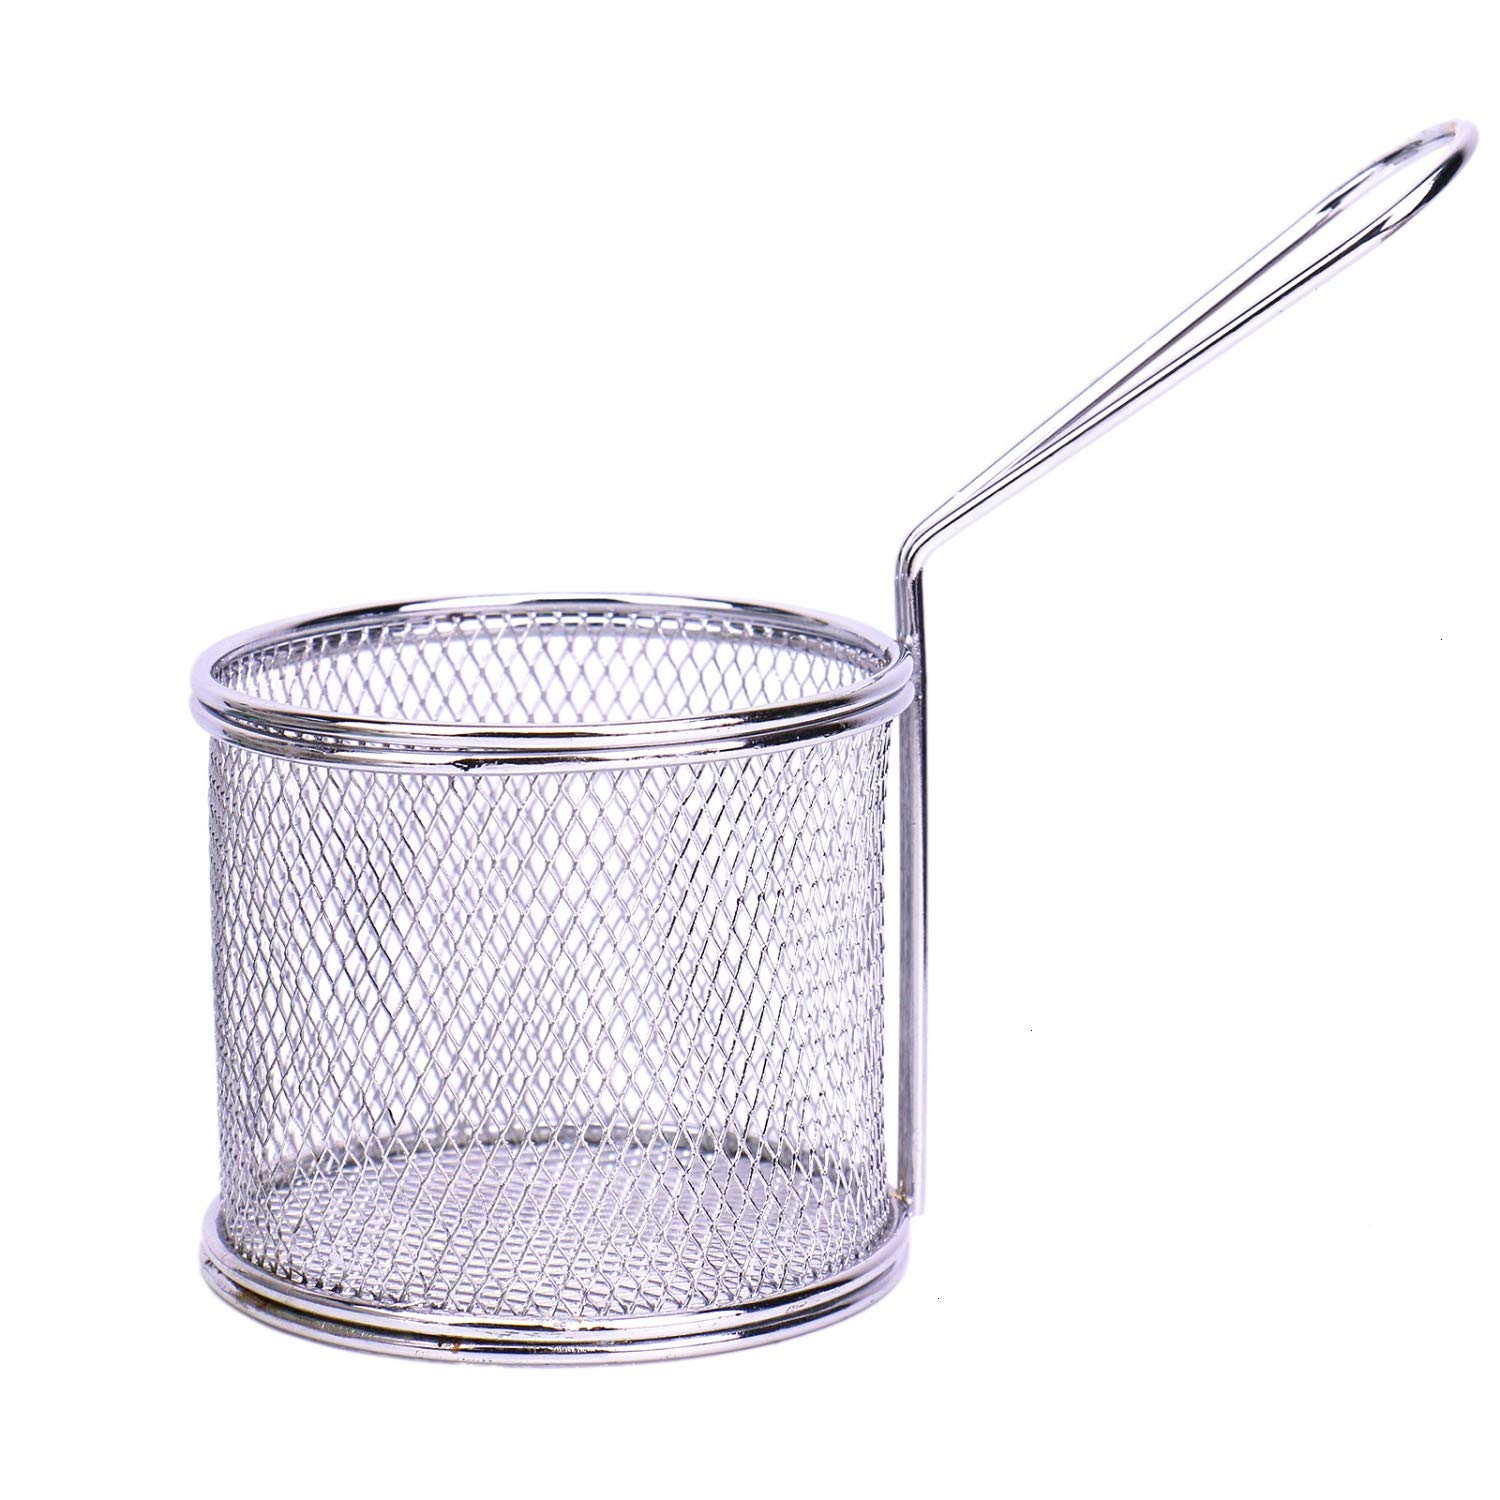 JETEHO 3.4 Inches Diameter Stainless Steel Mini Round Fry Basket Cooking Tool French Fries Basket